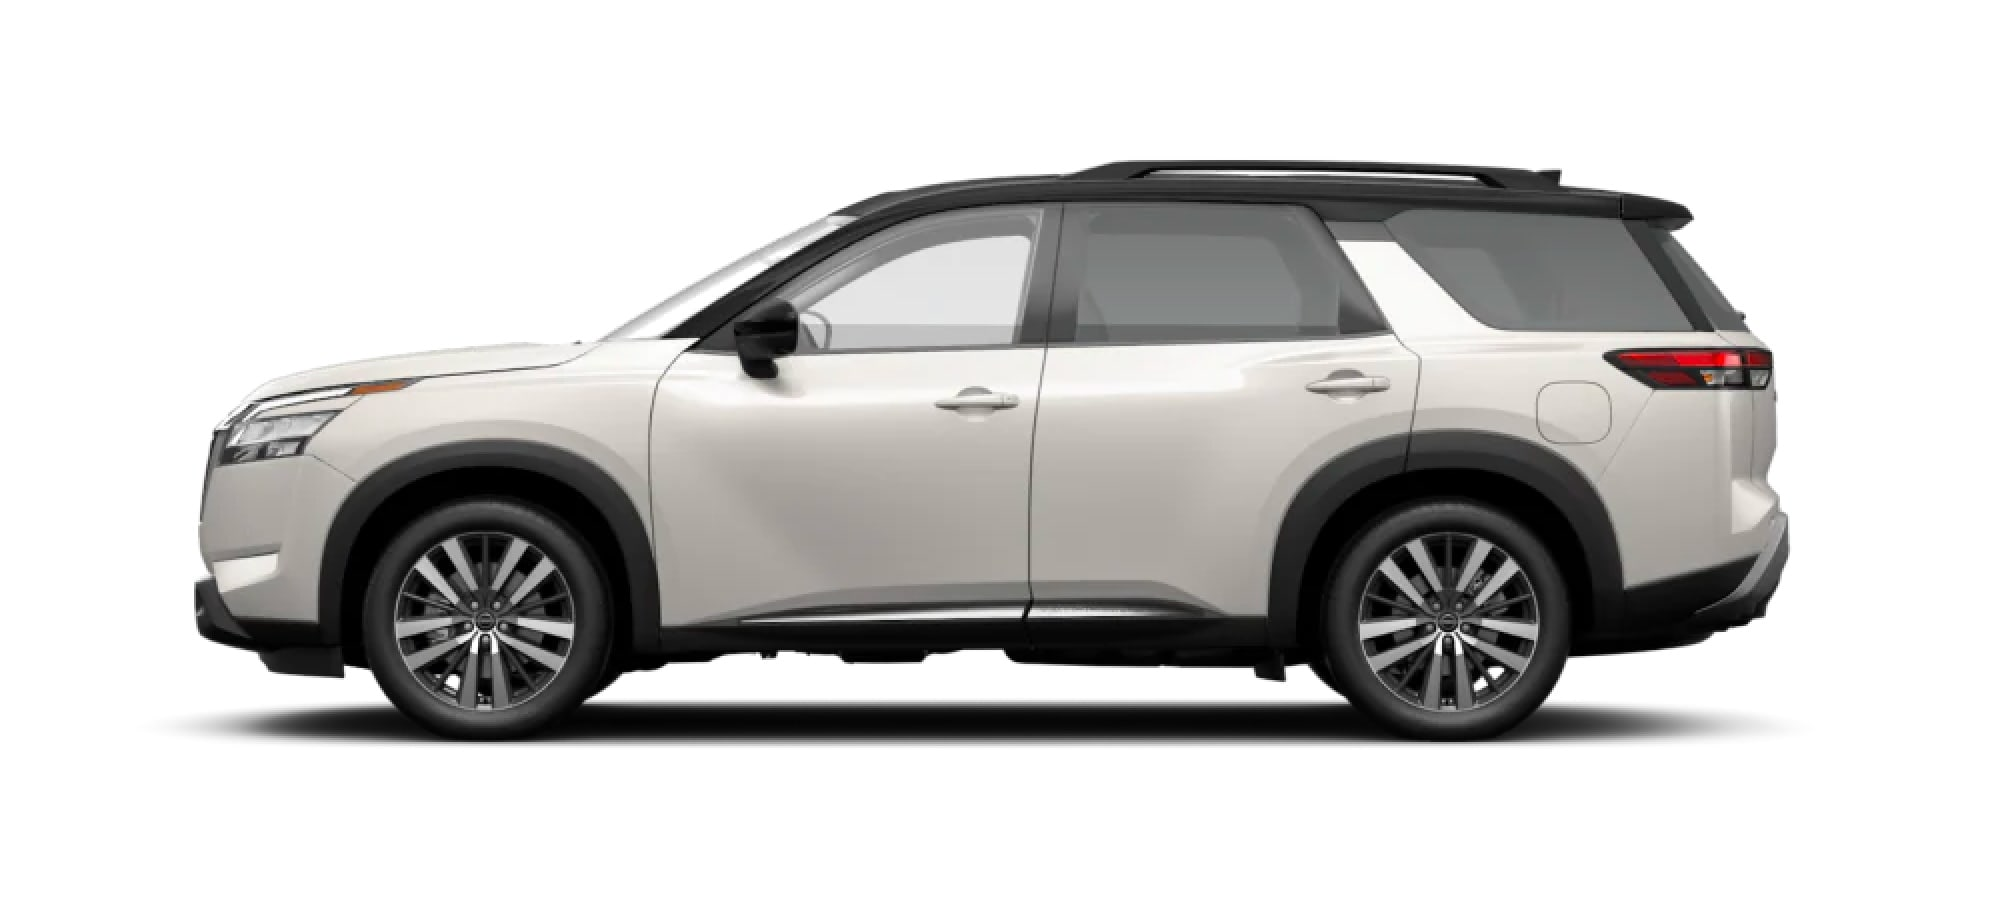 2022 Nissan Pathfinder in Two-Tone Pearl White TriCoat / Super Black